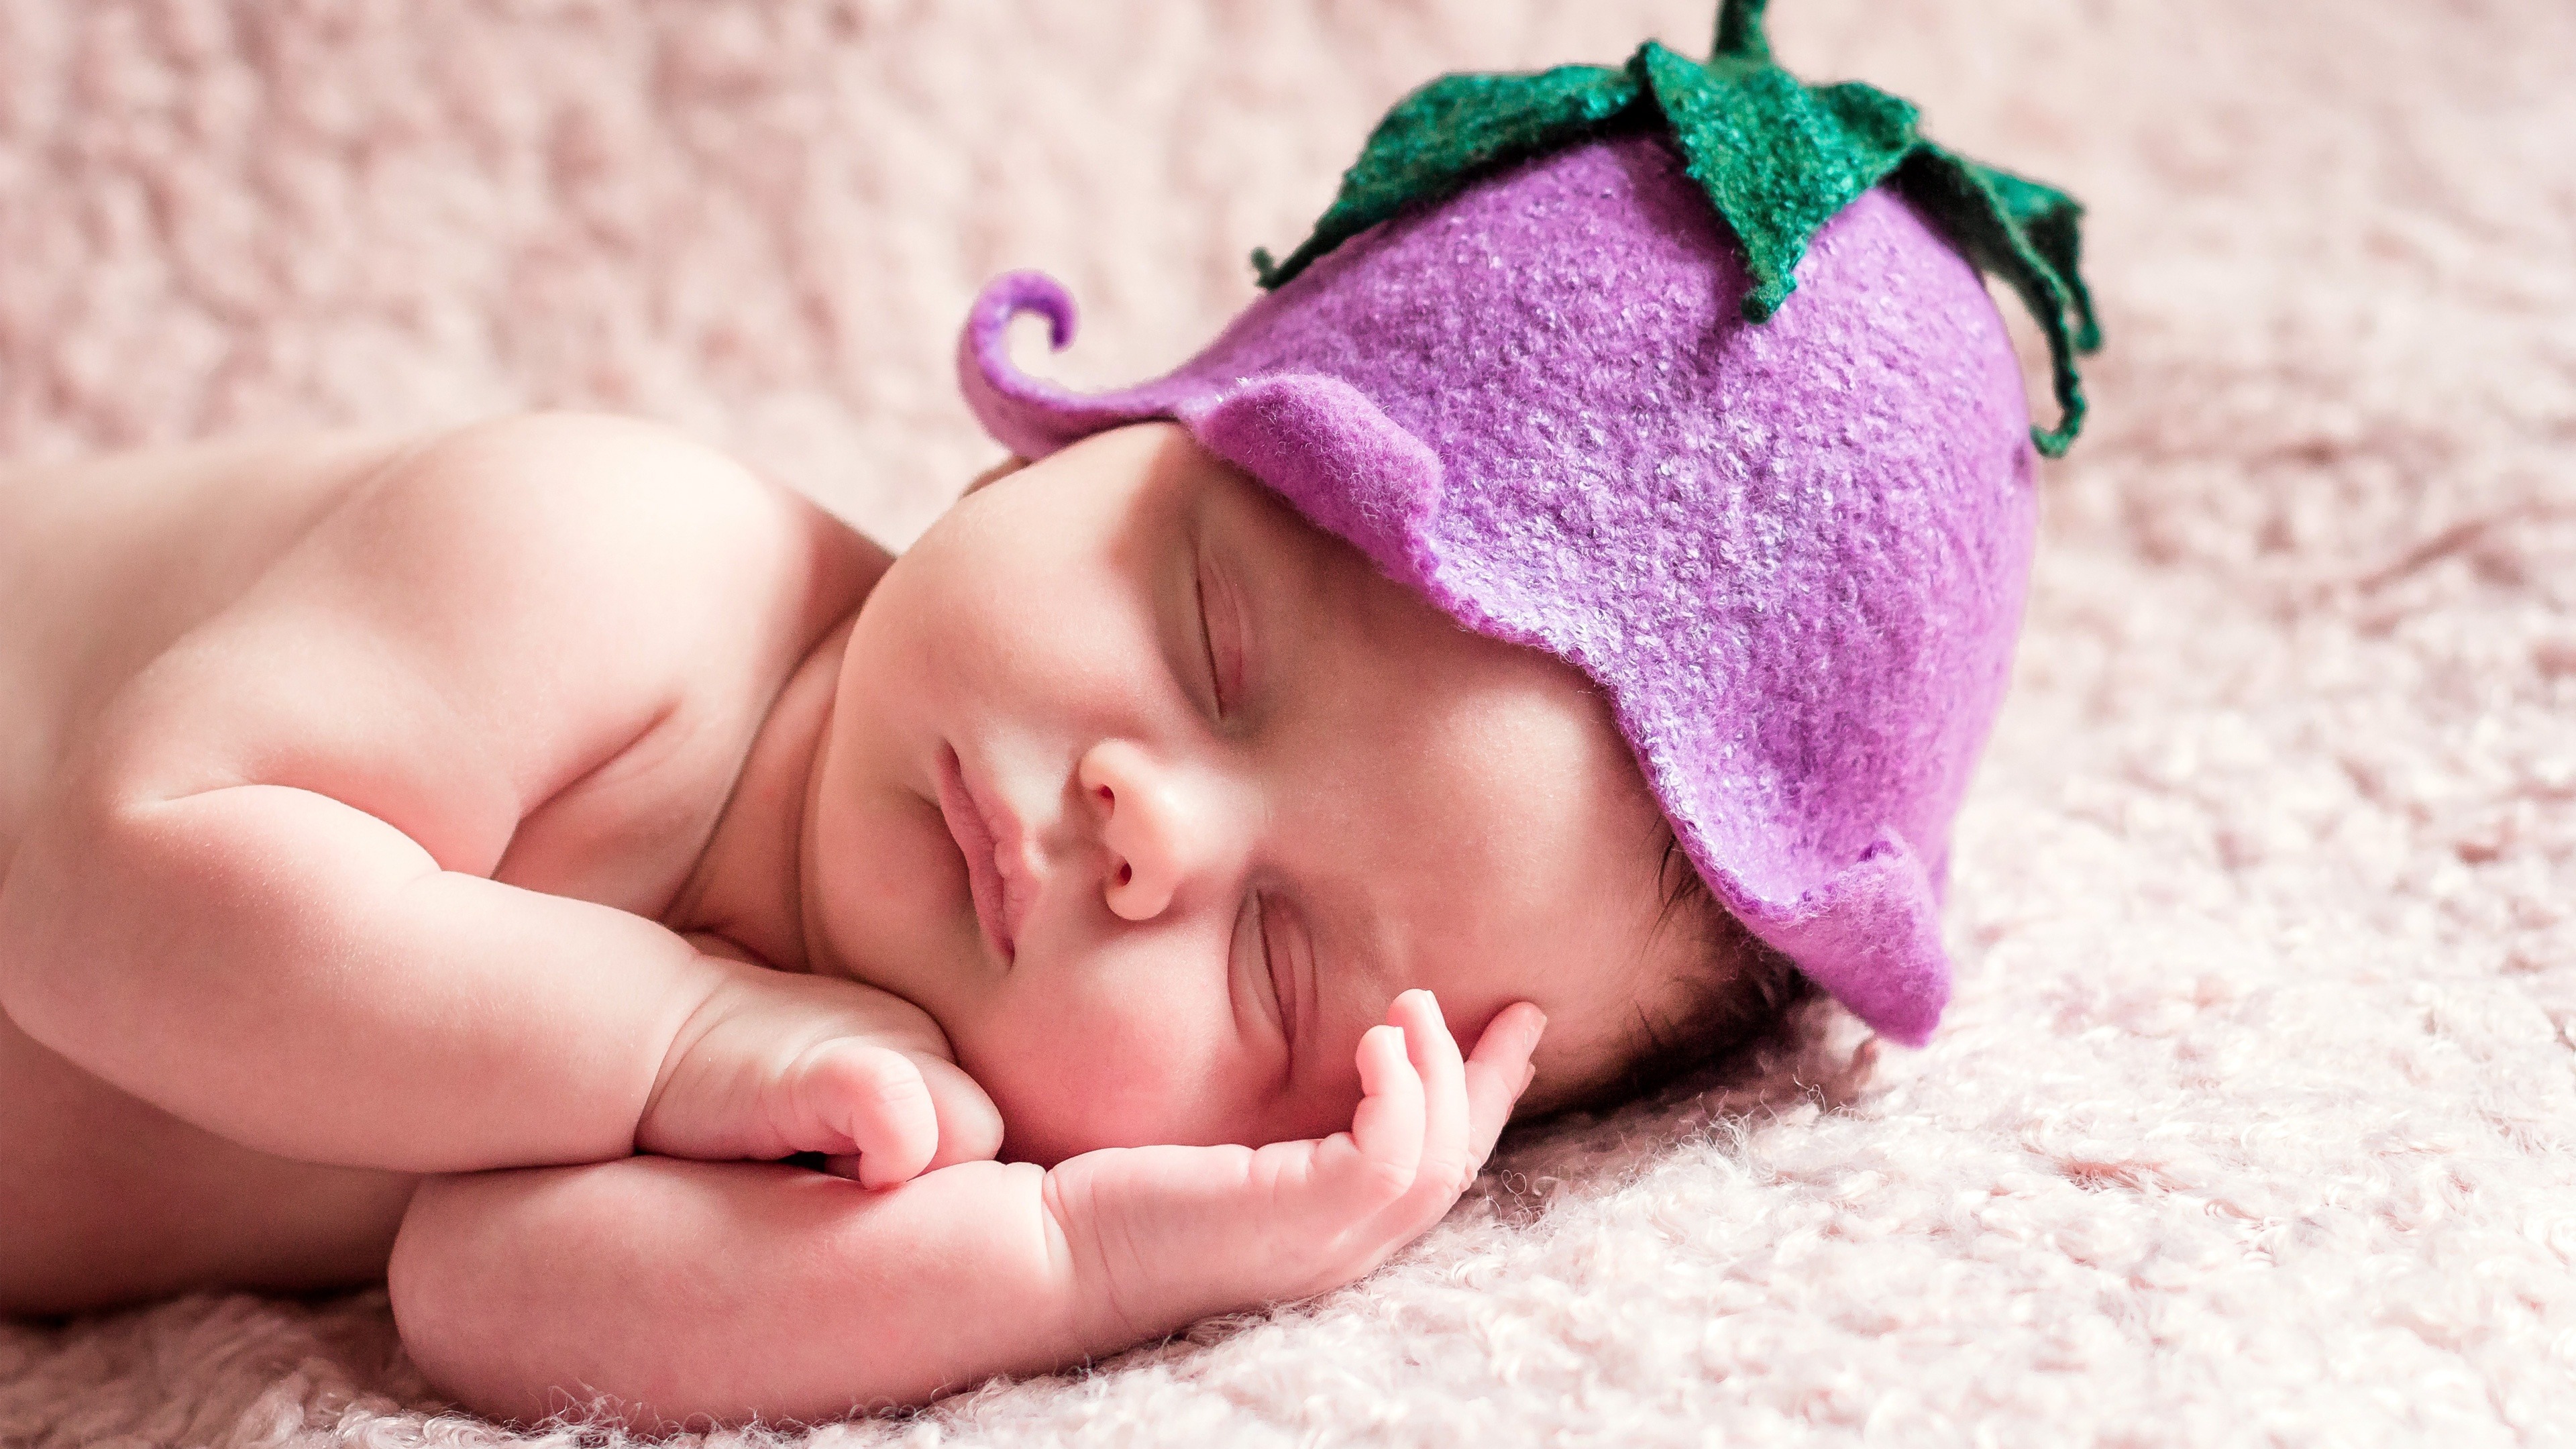 cute sleeping newborn baby wallpapers in jpg format for free download